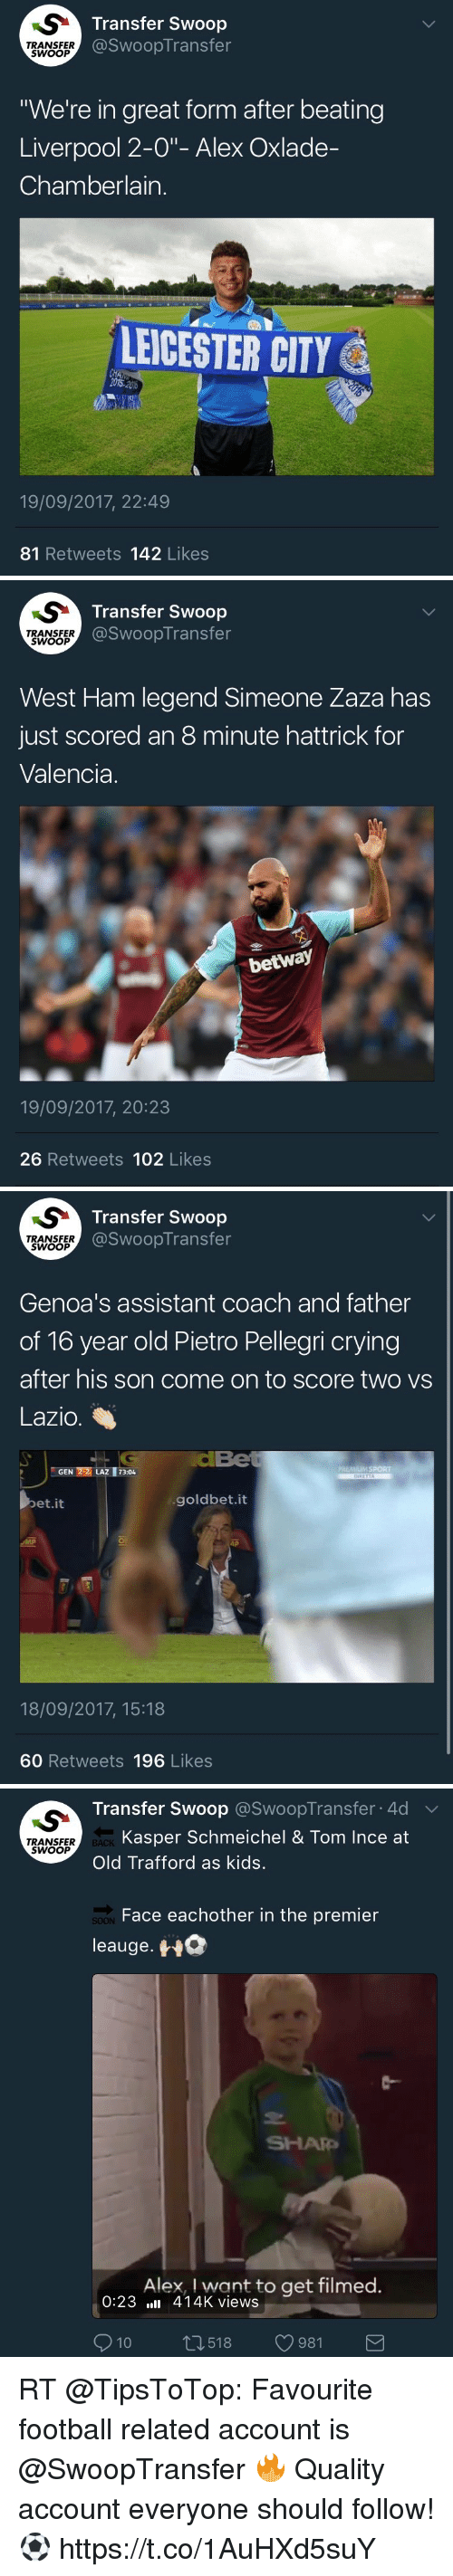 "Crying, Football, and Memes: Transfer Swoop  @SwoopTransfer  TRANSFER  SWOOP  ""We're in great form after beating  Liverpool 2-0""- Alex Oxlade-  Chamberlain  LEICESTER CITY  19/09/2017, 22:49  81 Retweets 142 Likes   Transfer Swoop  @SwoopTransfer  TRANSFER  SWOOP  West Ham legend Simeone Zaza has  just scored an 8 minute hattrick for  Valencia.  betway  19/09/2017, 20:23  26 Retweets 102 Likes   Transfer Swoop  @SWoopTransfer  TRANSFER  SWOOP  Genoa's assistant coach and father  of 16 year old Pietro Pellegri crying  after his son come on to score two vs  Lazio.  GEN 2-2 LAZ 7304  PAUMUMSPORT  et.it  goldbet.it  18/09/2017, 15:18  60 Retweets 196 Likes   Transfer Swoop @SwoopTransfer-4d  ﹀  SA  Kasper Schmeichel & Tom Ince at  TRANSFER  SWOOP  BACK  Old Trafford as kids.  Face eachother in the premier  leauge.  SOON  SHARe  Alex, I want to get filmed.  0:23,ll 414K views  010  518  981 RT @TipsToTop: Favourite football related account is @SwoopTransfer 🔥  Quality account everyone should follow! ⚽️ https://t.co/1AuHXd5suY"